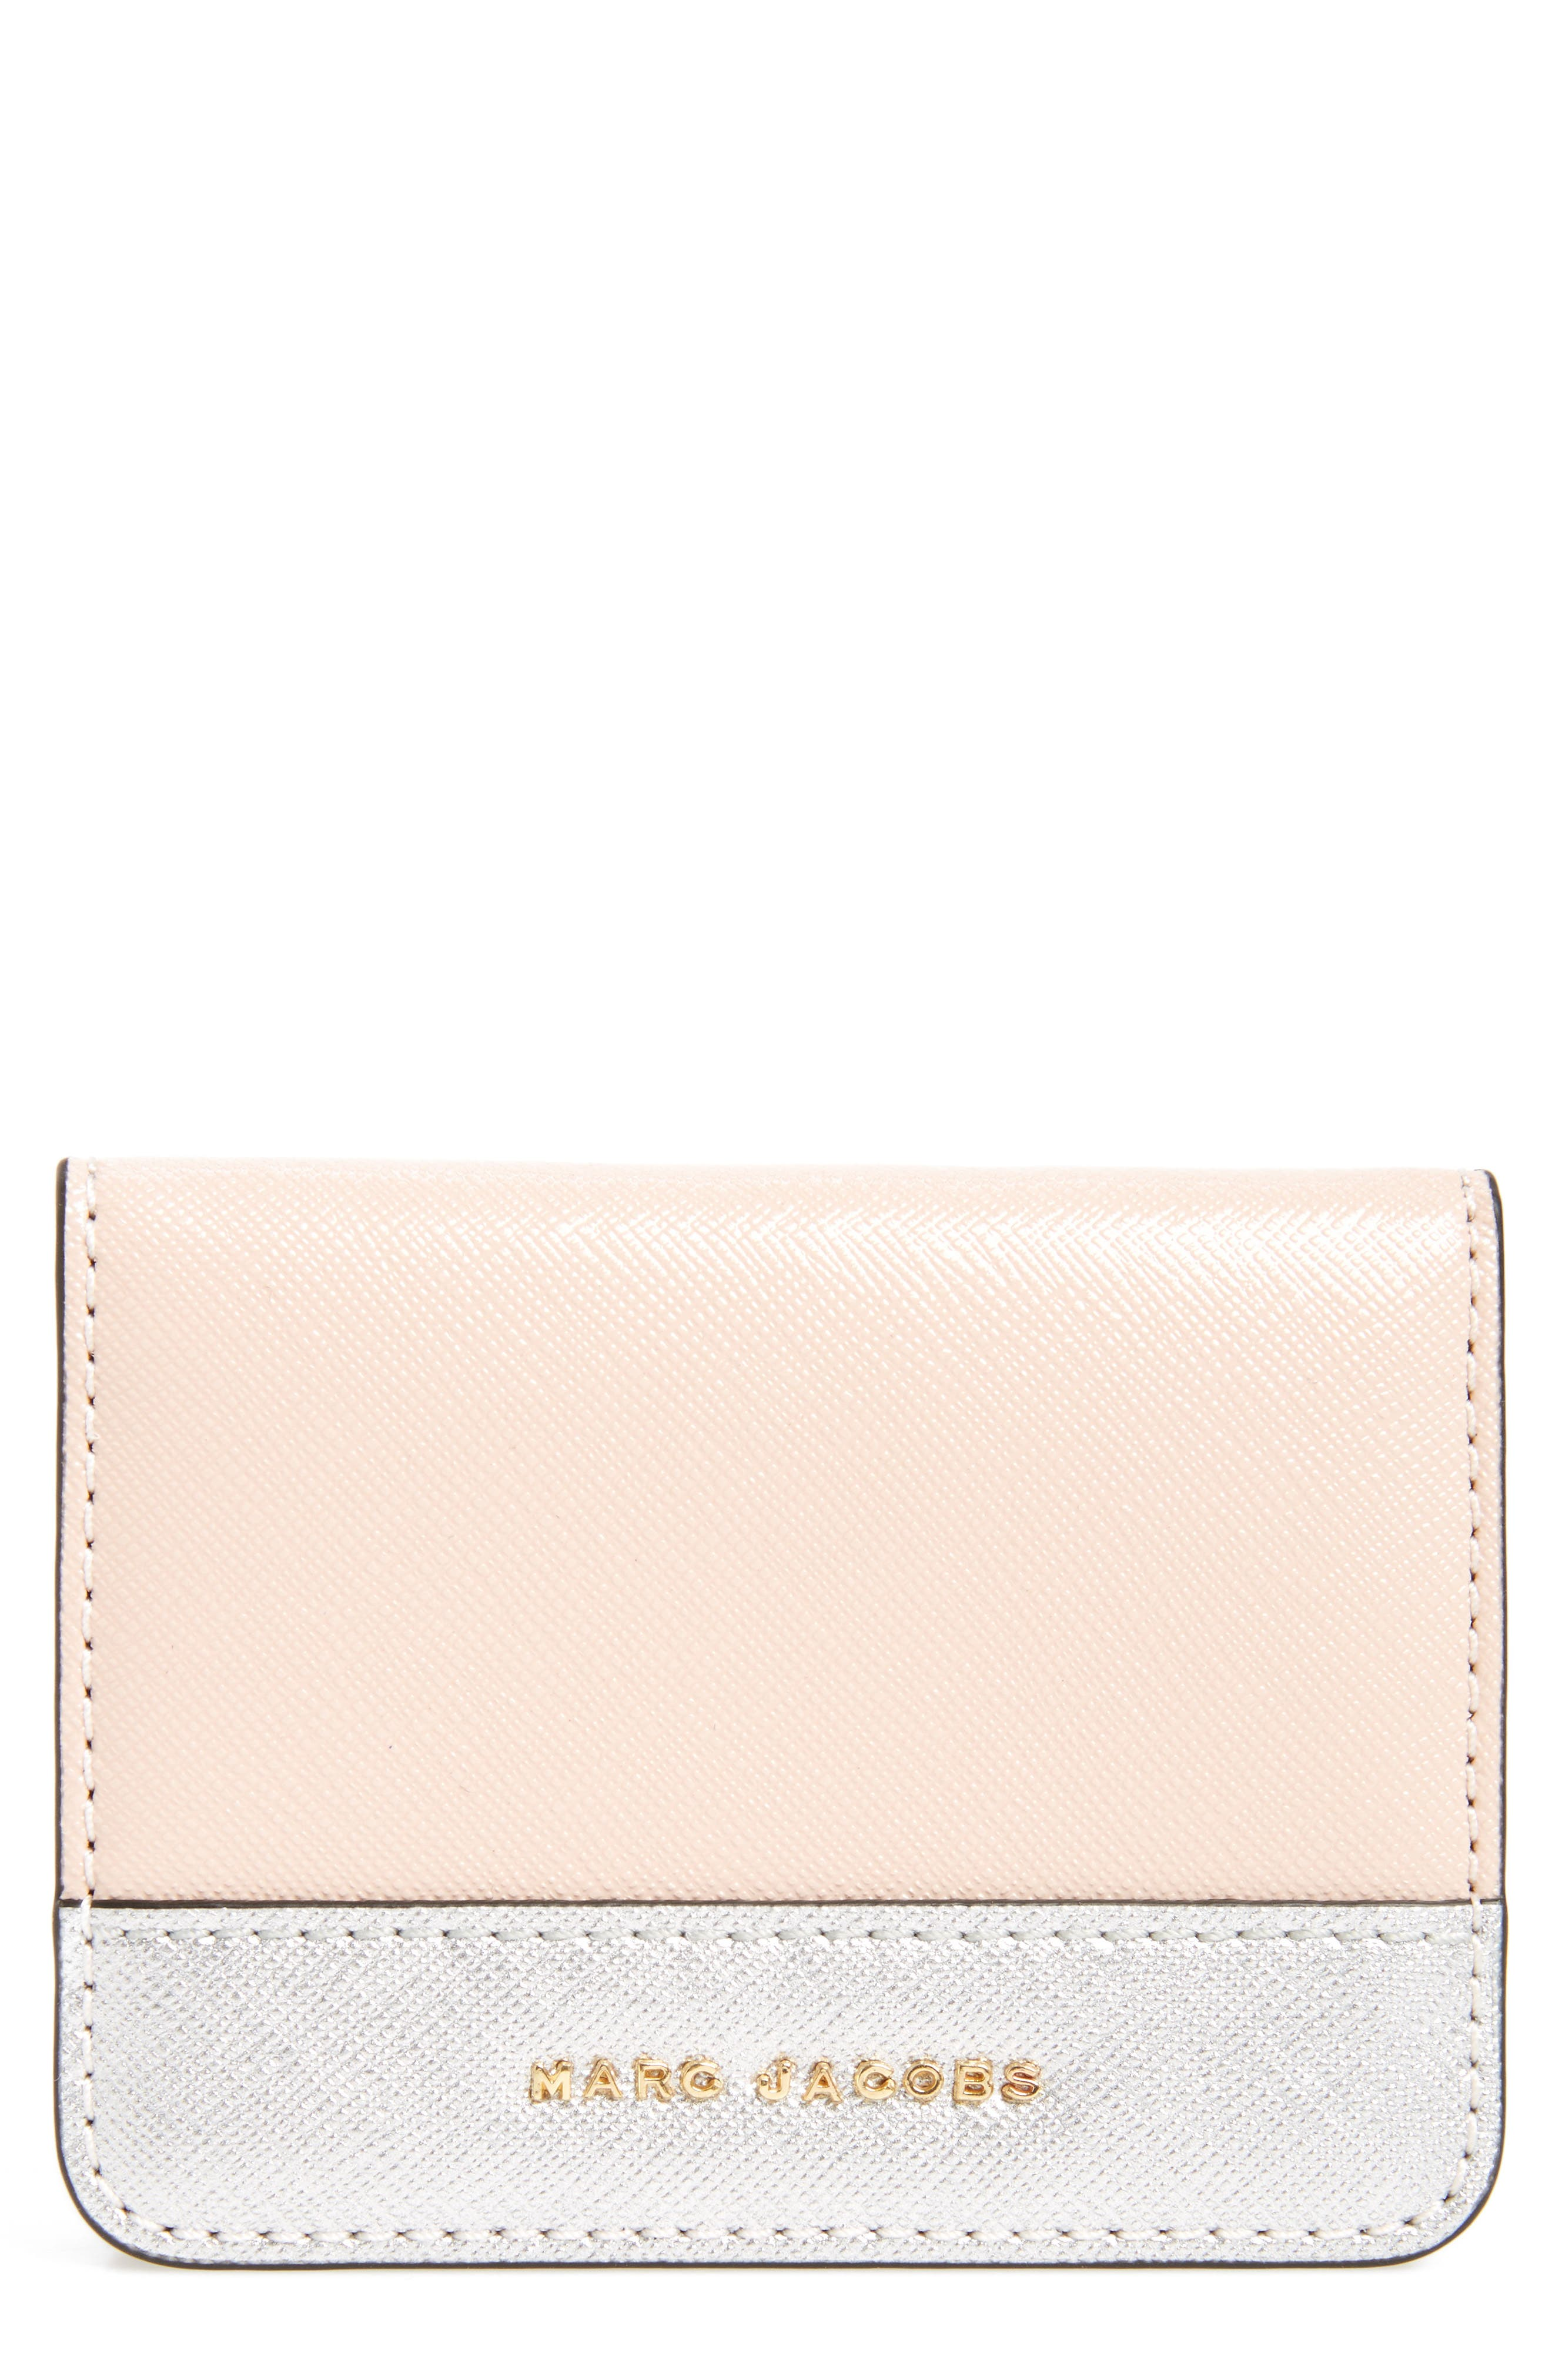 Main Image - MARC JACOBS Color Block Saffiano Leather Business Card Case